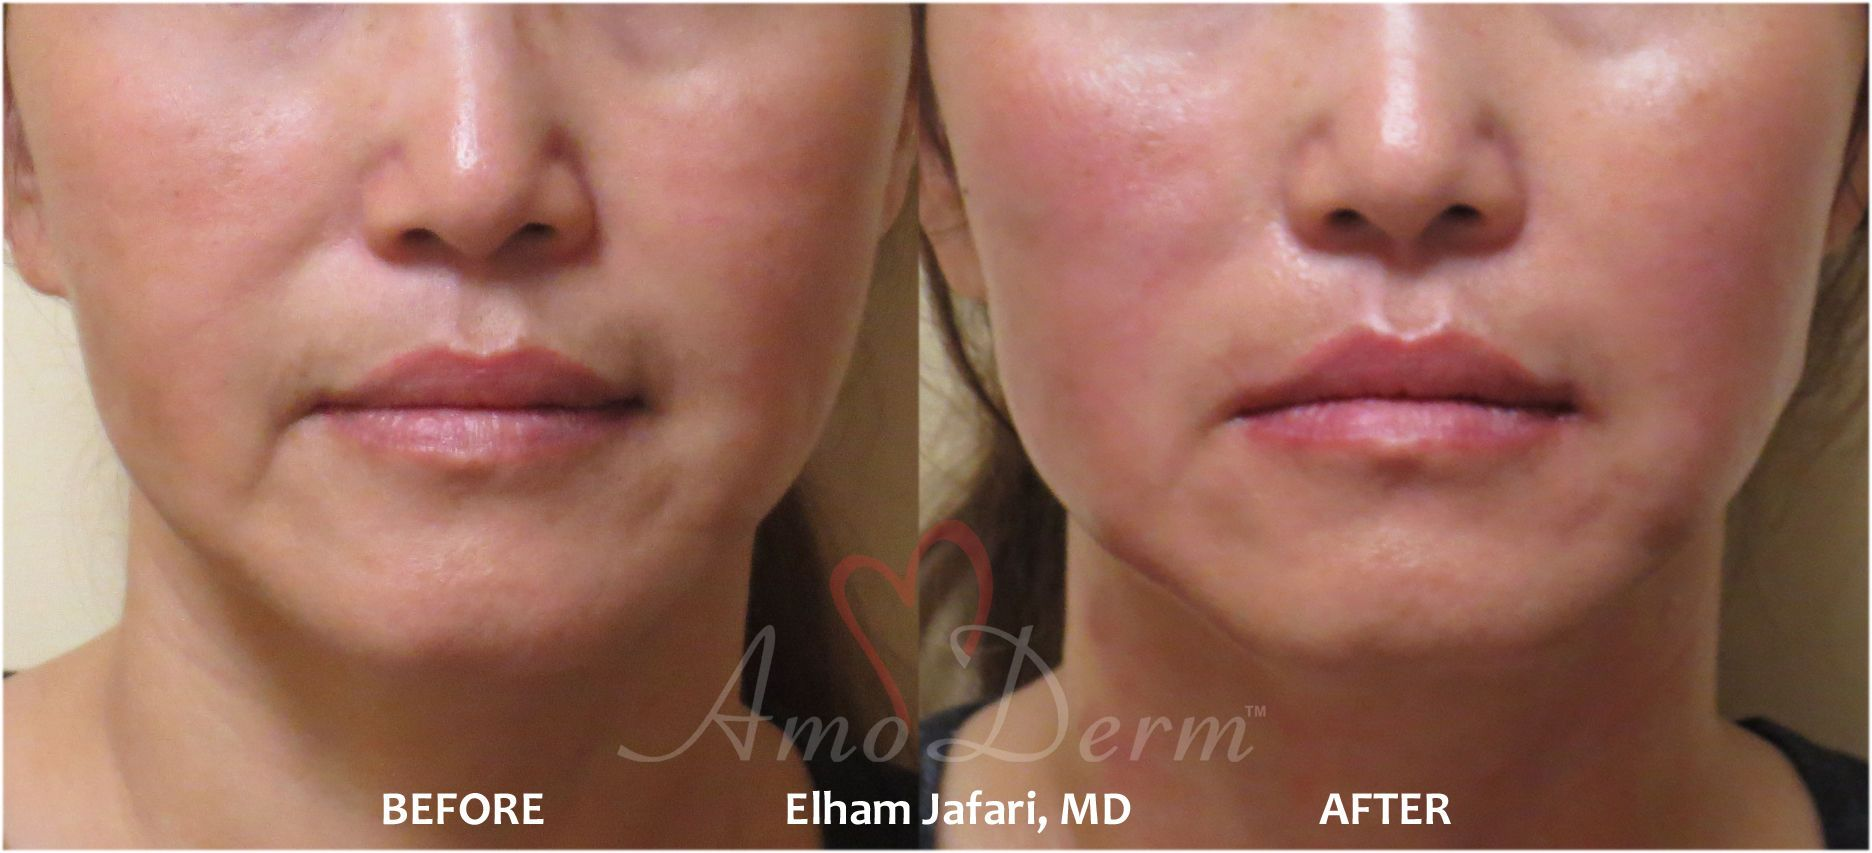 Thread Lift Non Surgical Cosmetic Procedure In Irvine